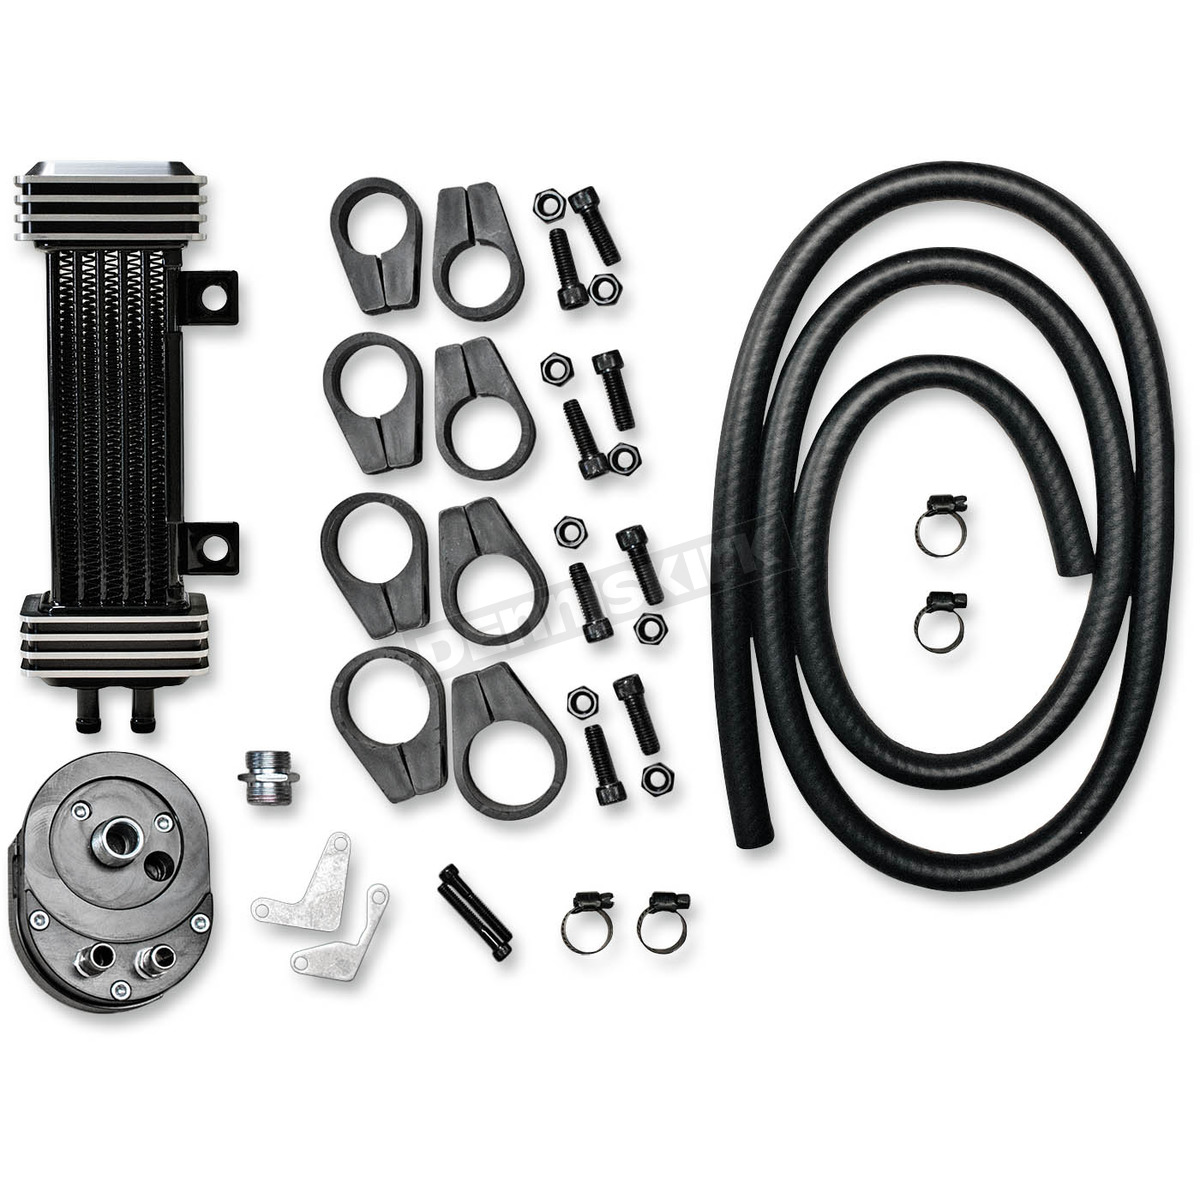 Jagg Deluxe 6 Row Vertical Frame Mount Oil Cooler Kit